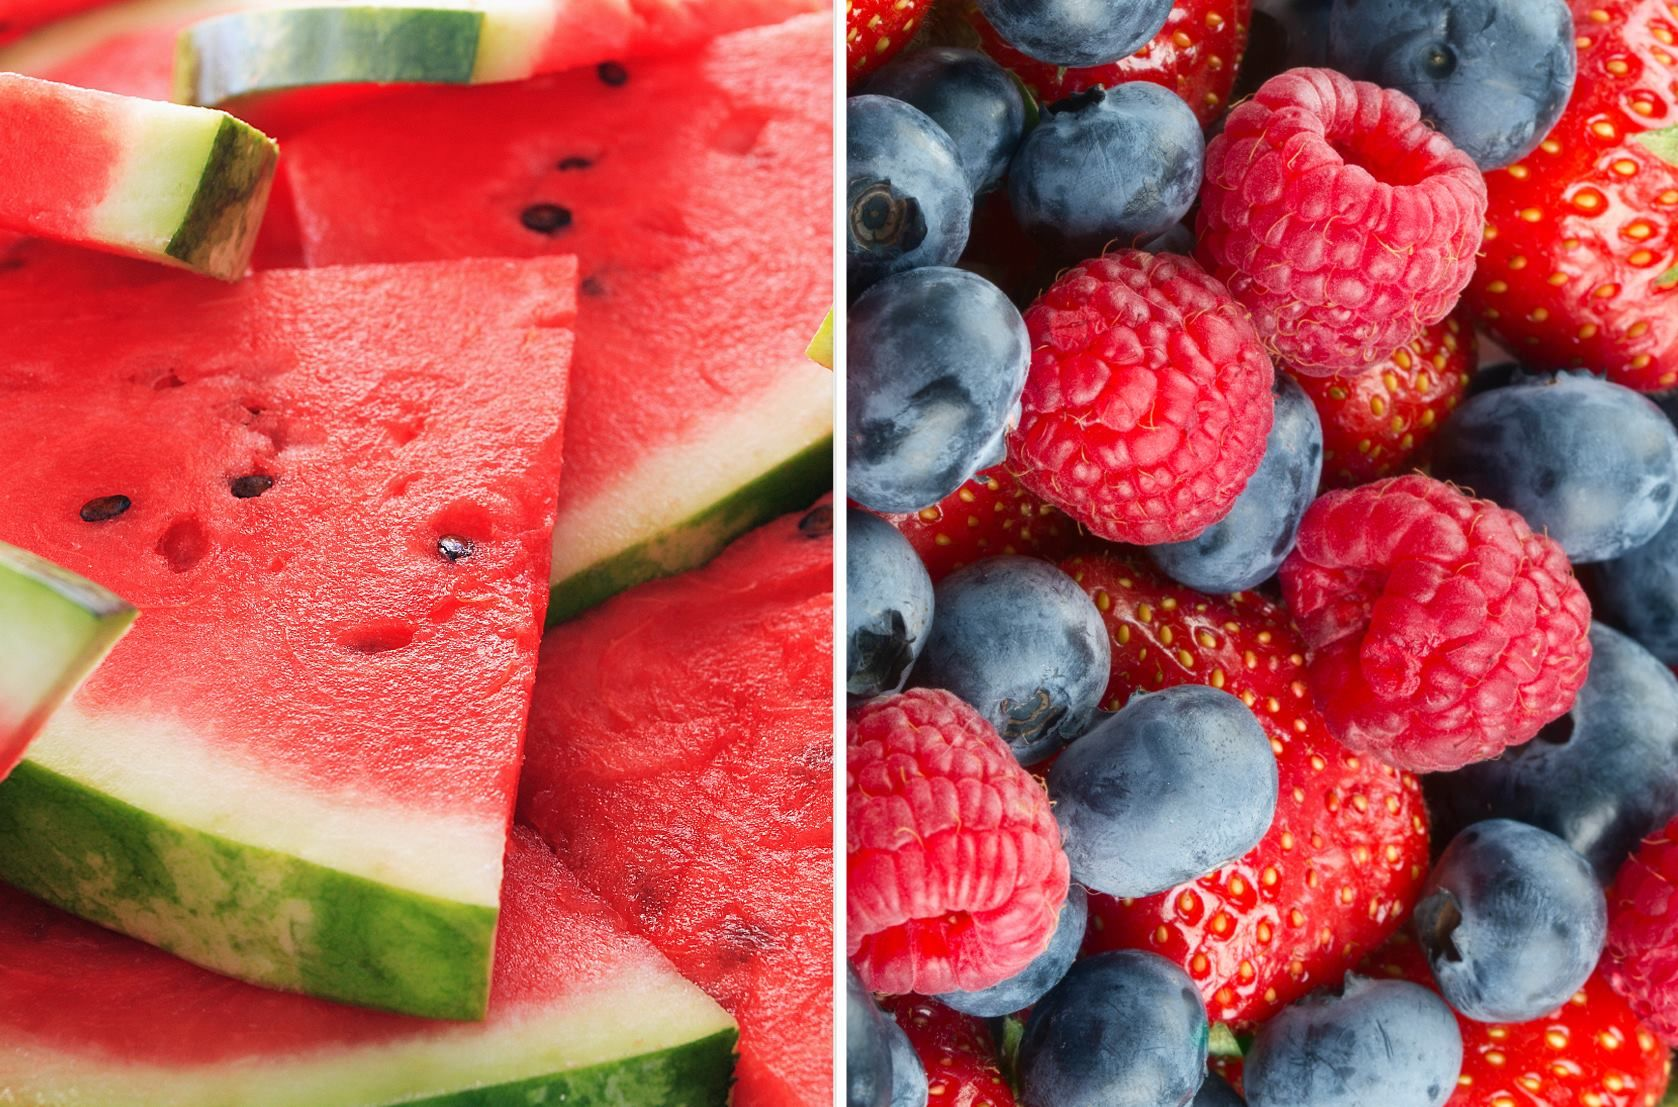 Check out these 7 Summer ideas for Melons & Berries, plus a recipe for Pineapple Yogurt Dip!